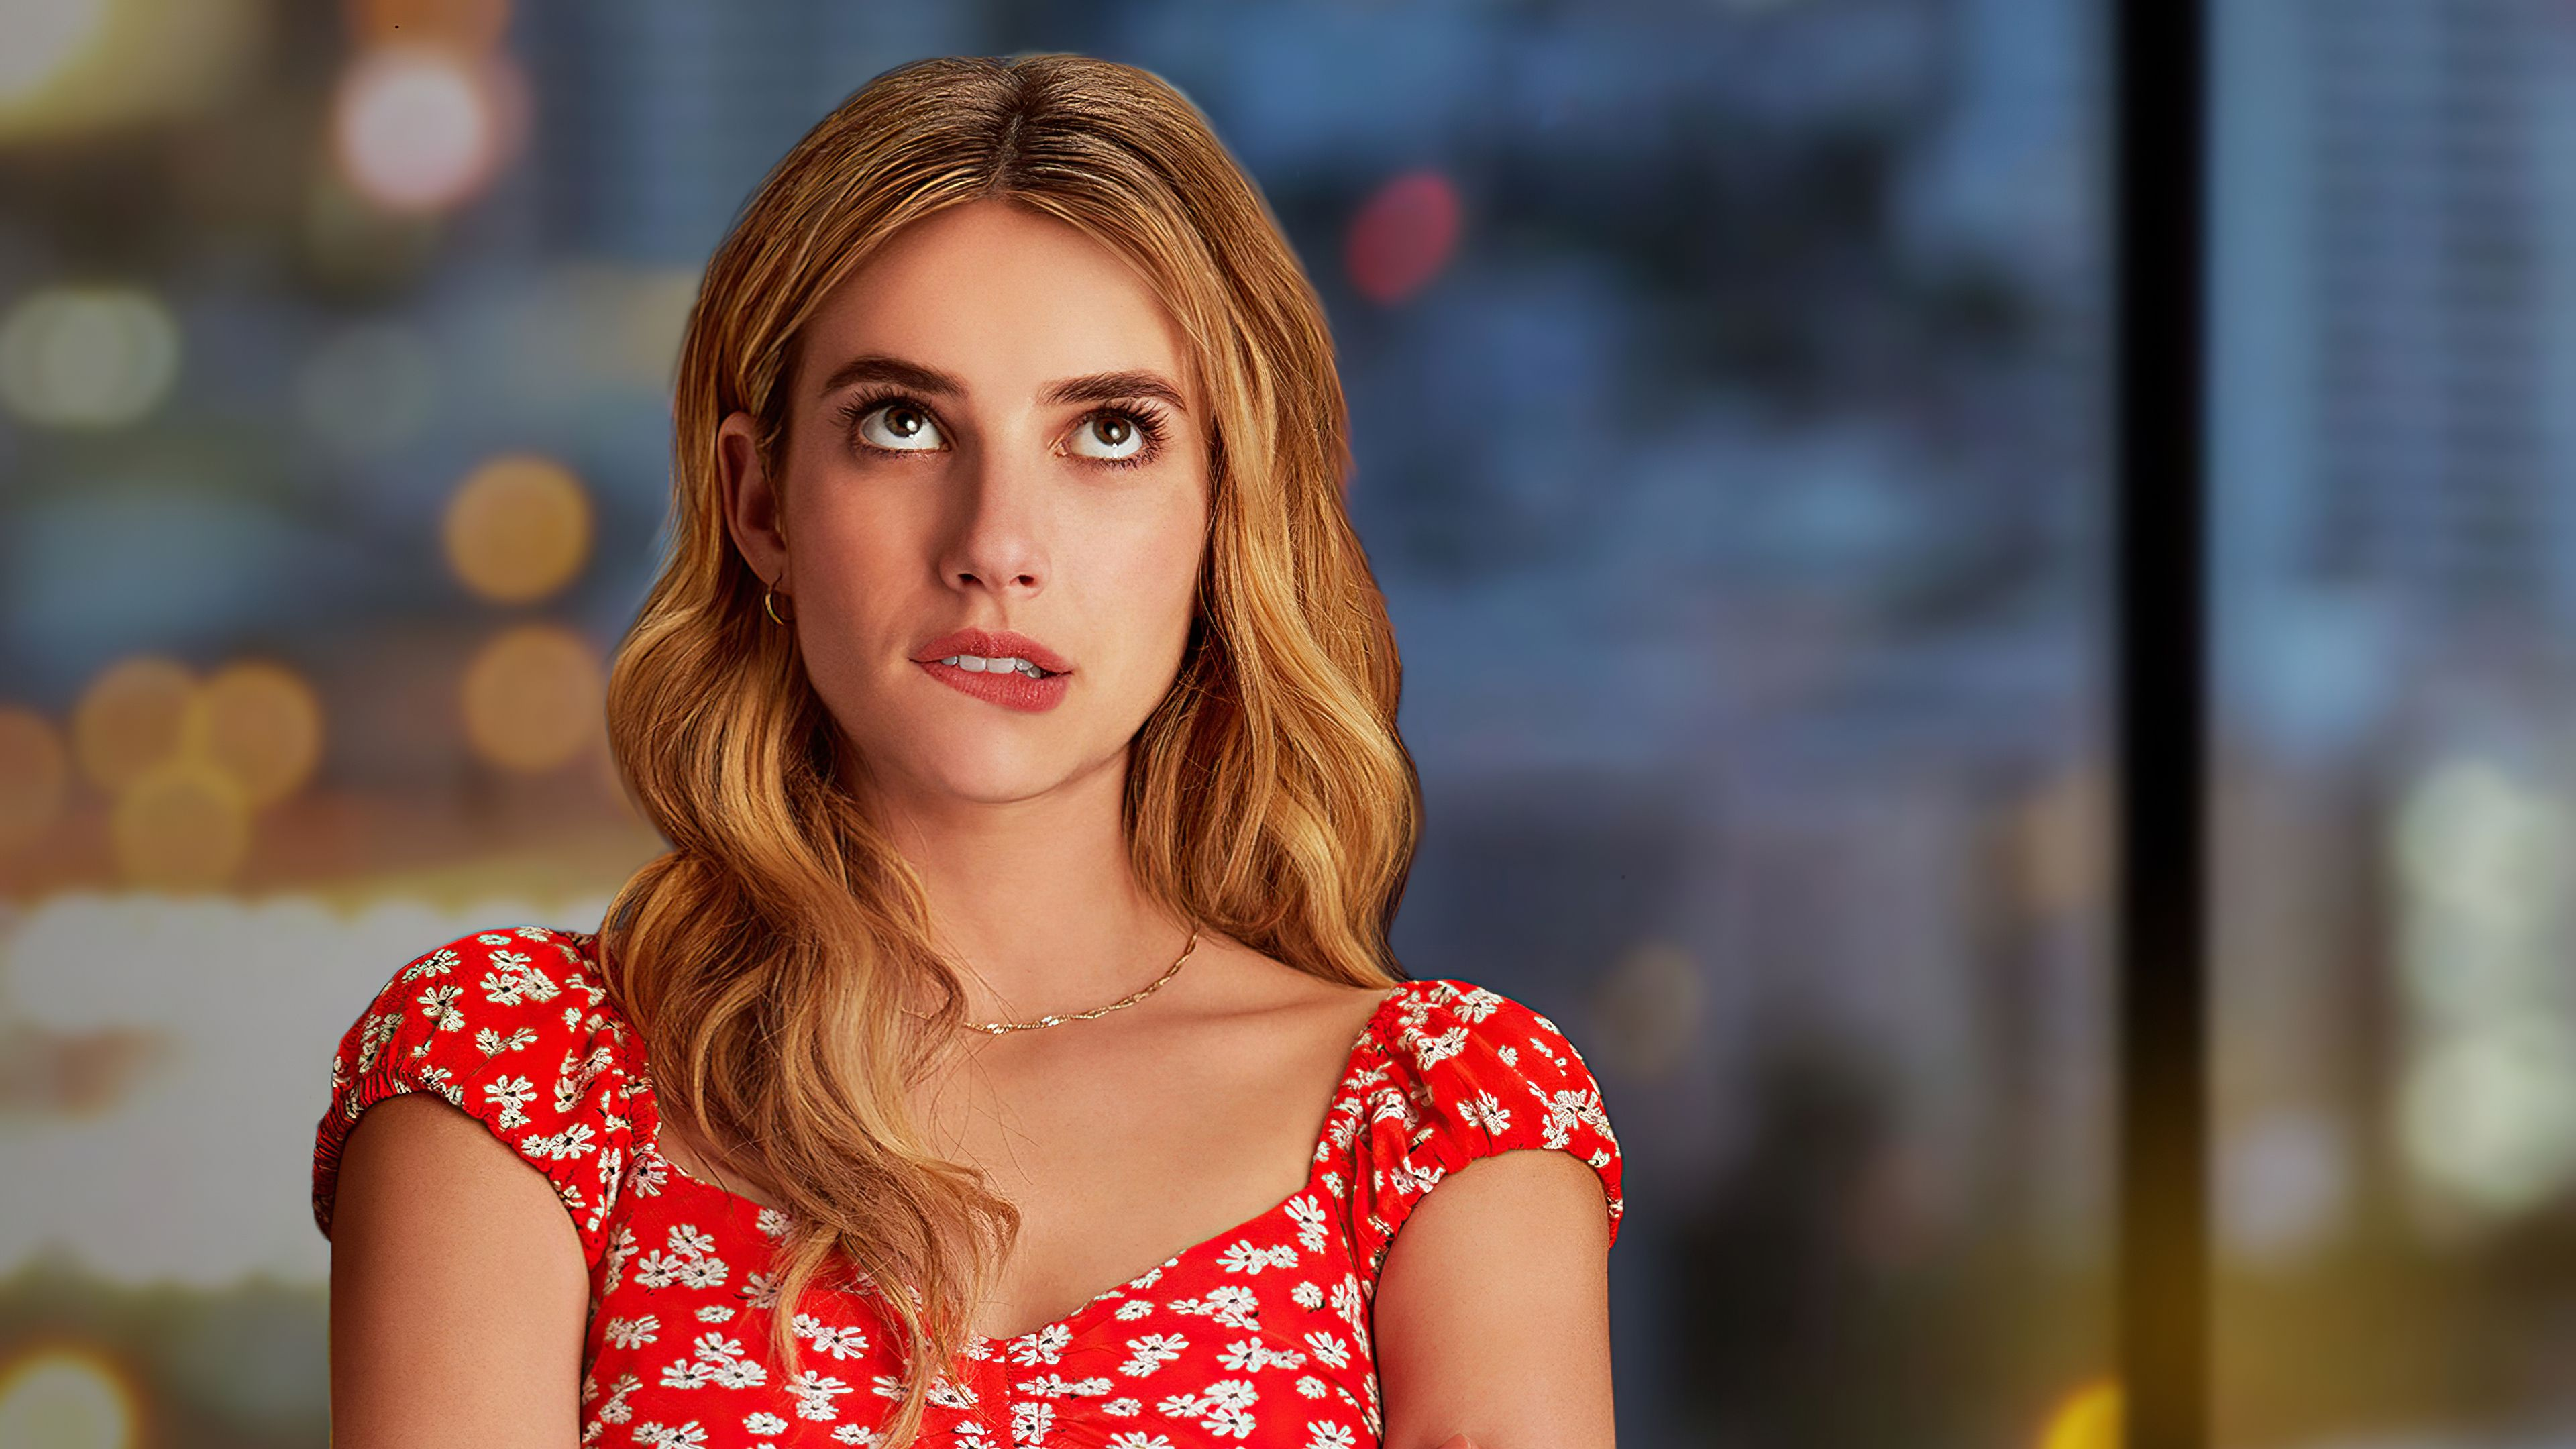 Holidate 4k Holidate 4k Wallpapers In 2021 Celebrity Wallpapers Emma Roberts Celebrities